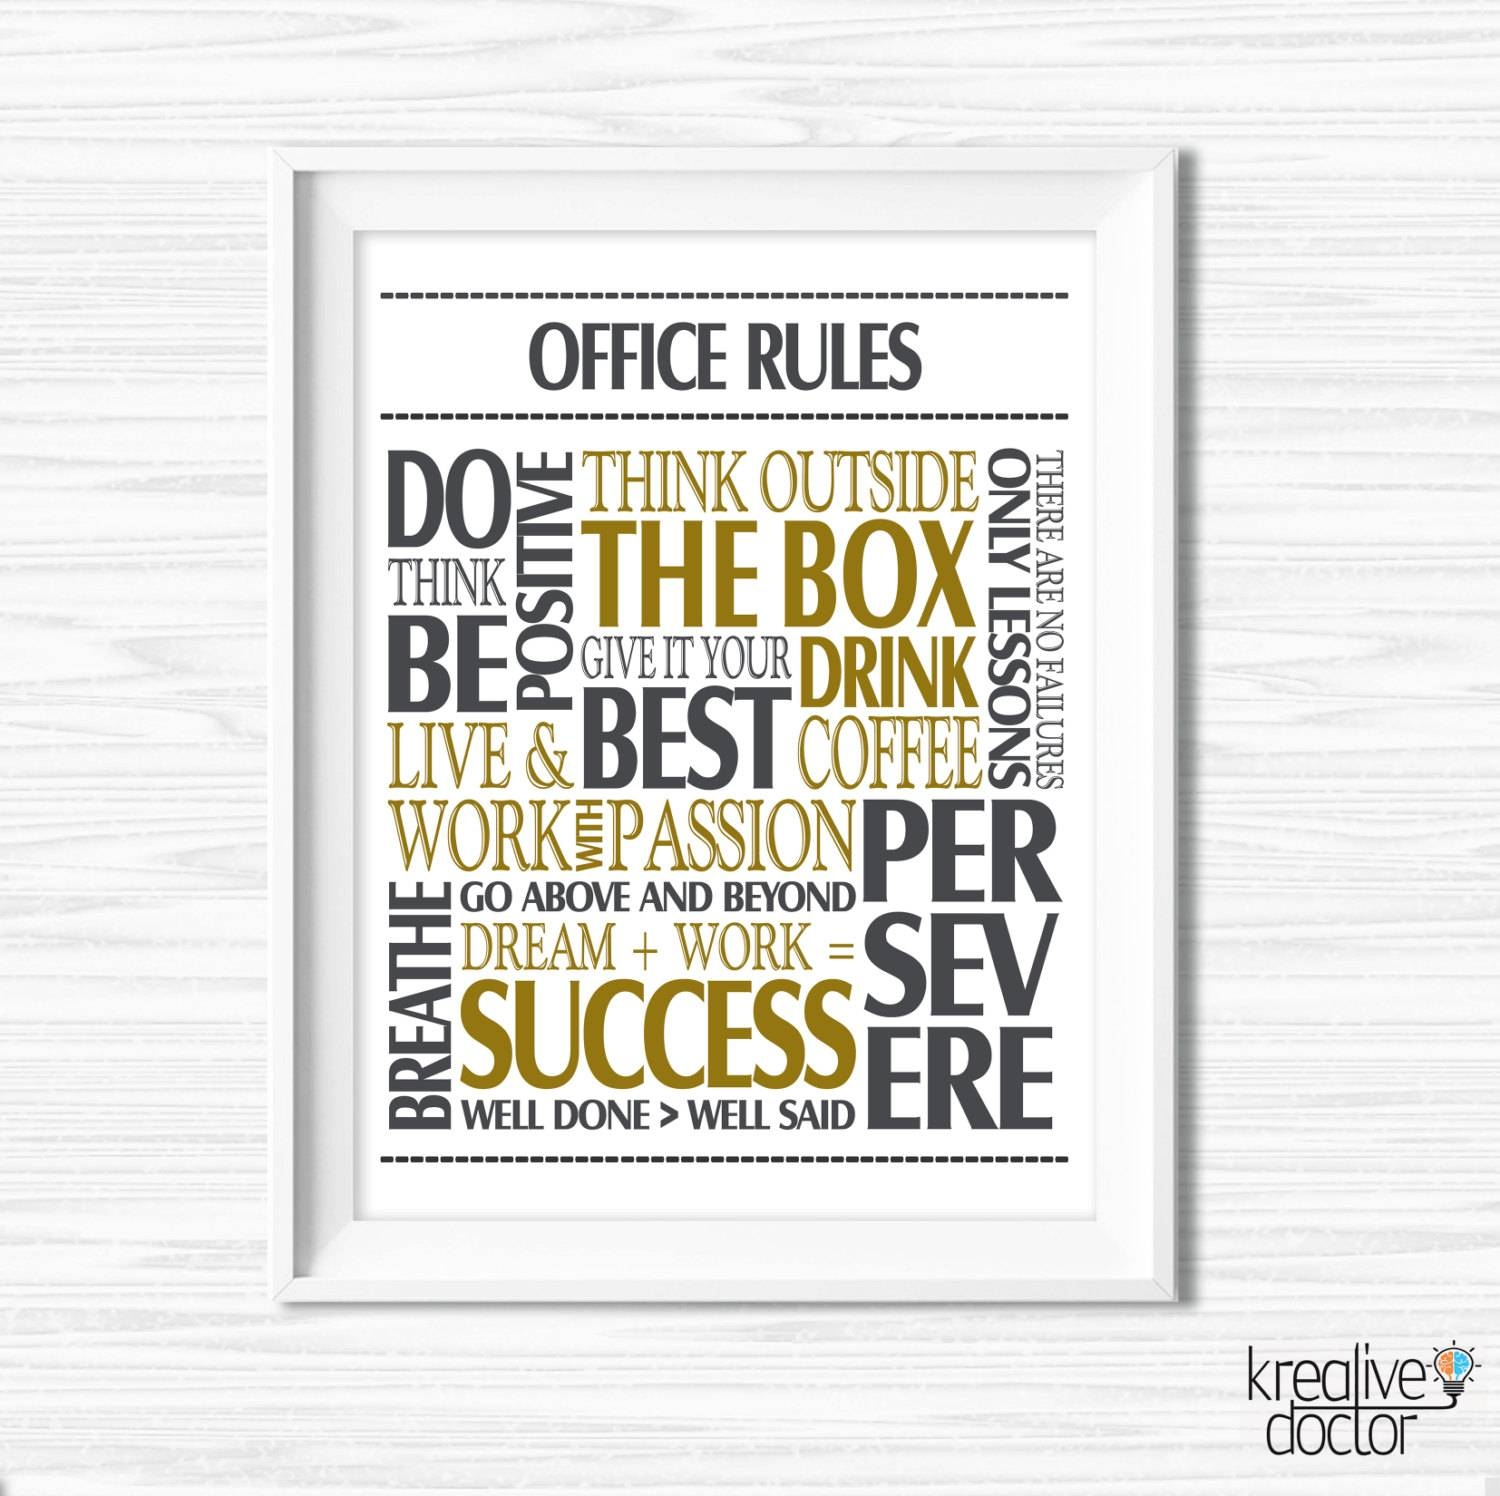 Office Wall Art Motivational Wall Decor Inspirational Quote With Regard To Latest Inspirational Wall Art For Office (Gallery 3 of 20)